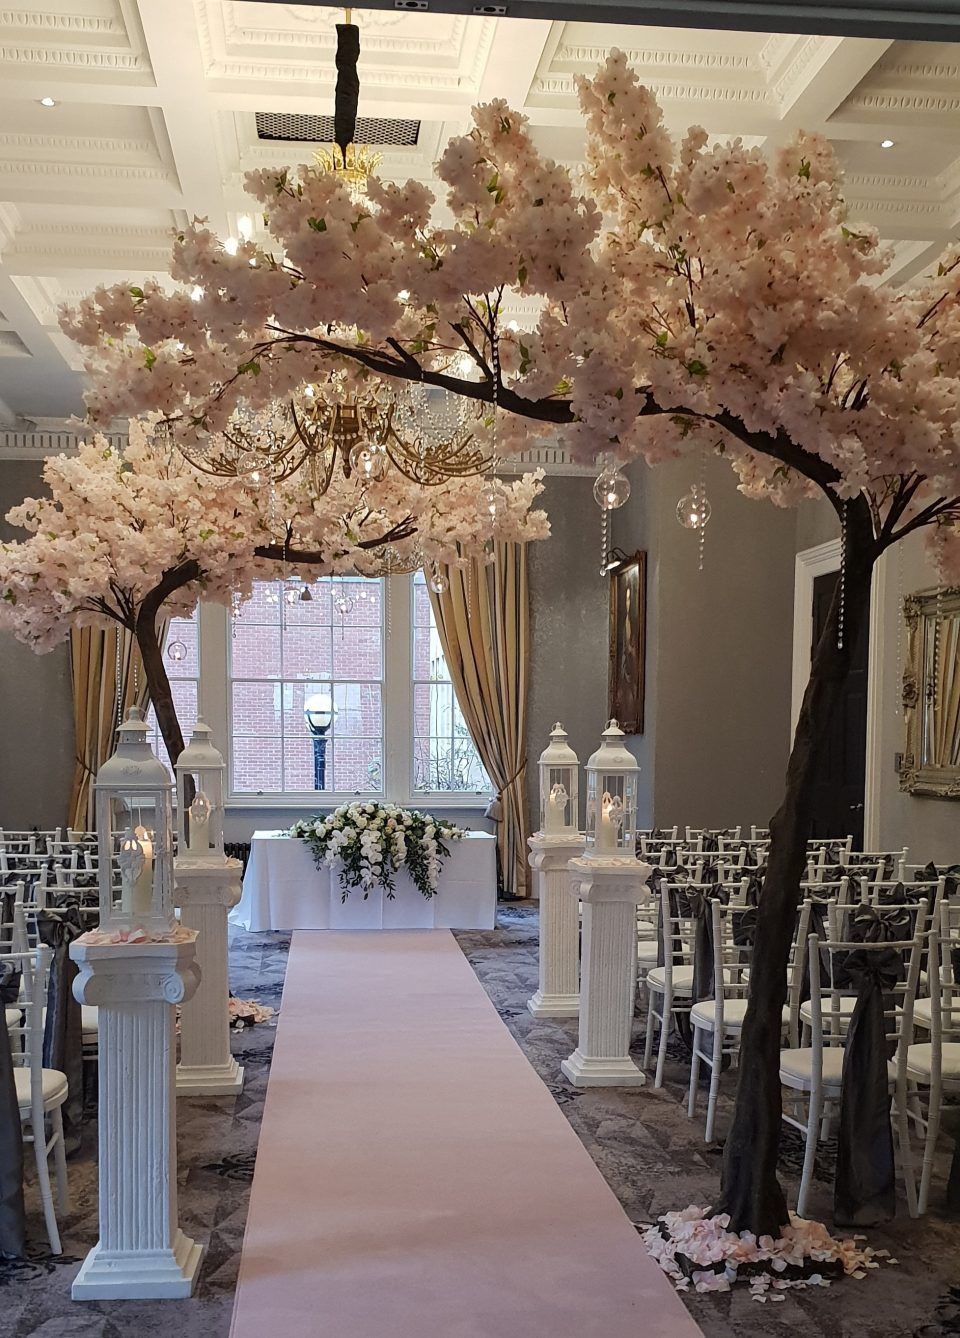 Pin By Yesenia Lopez On 25th Anniversary Renewal Artificial Cherry Blossom Tree Wedding Tree Decorations Blossom Trees